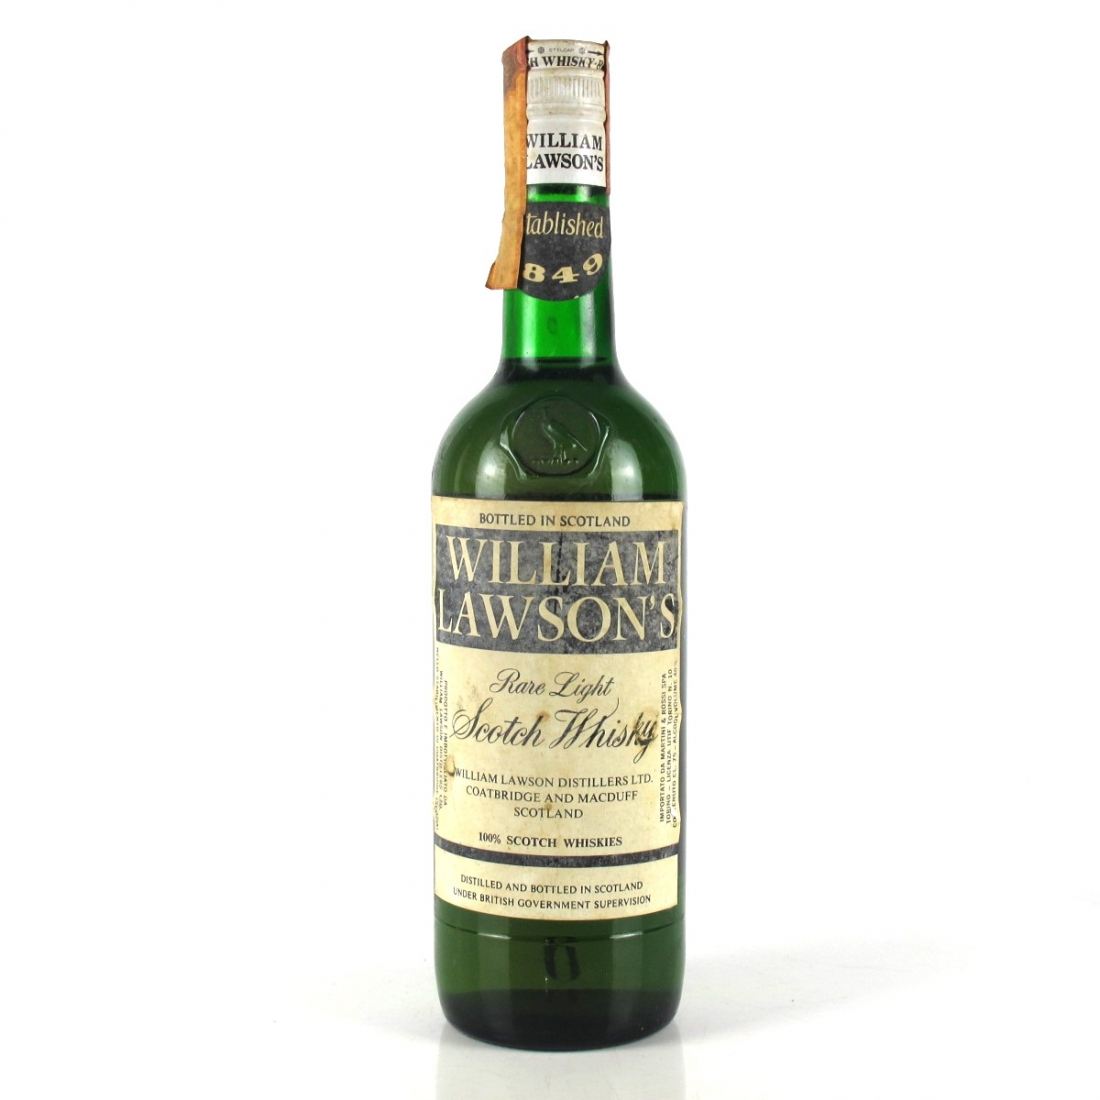 William Lawson's Finest Blended Whisky 1970s